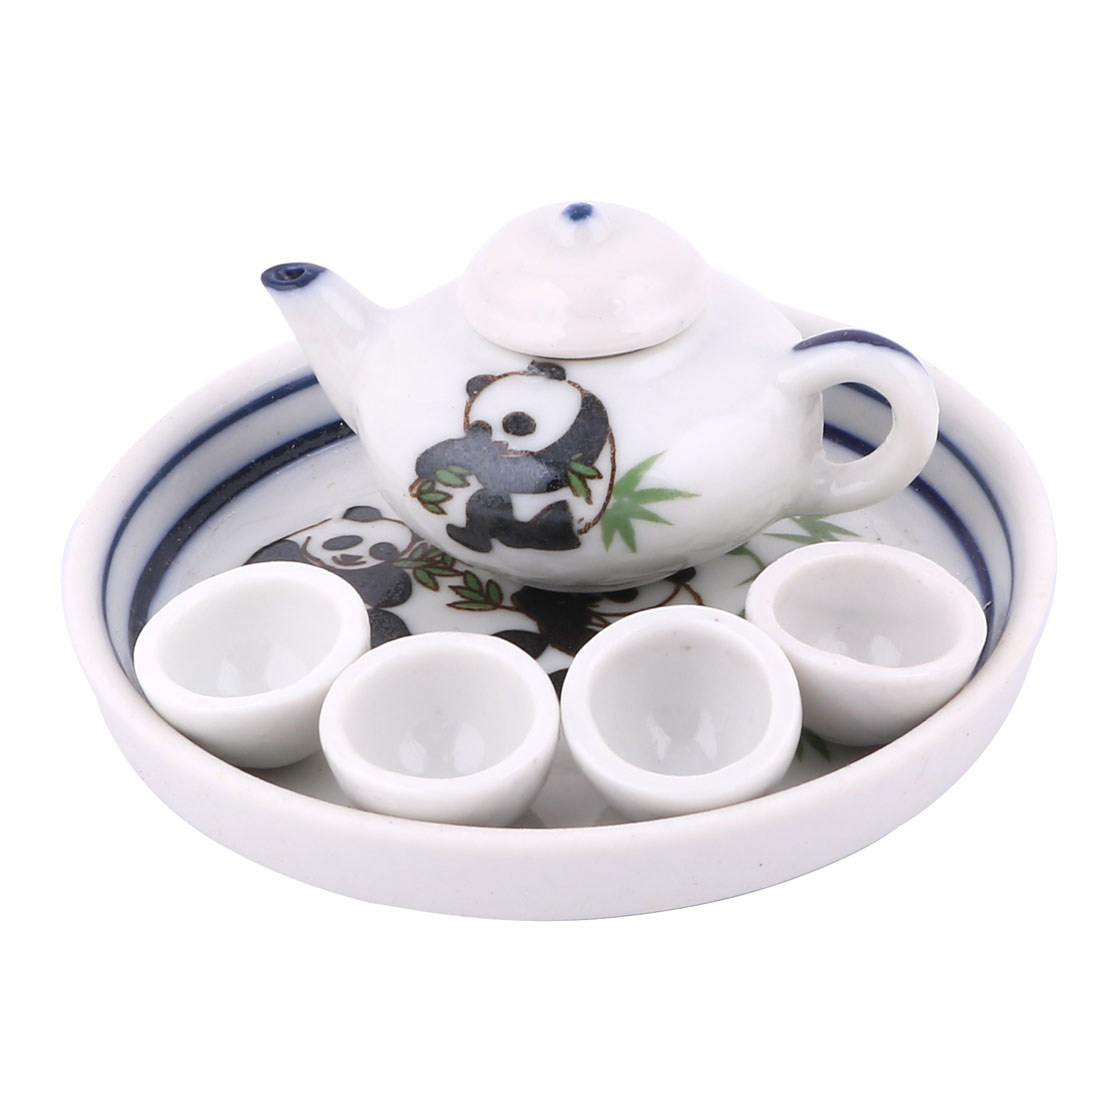 Home Ceramic Pandas Bamboo Printed Mini Plate Teapot Cup Tea Set